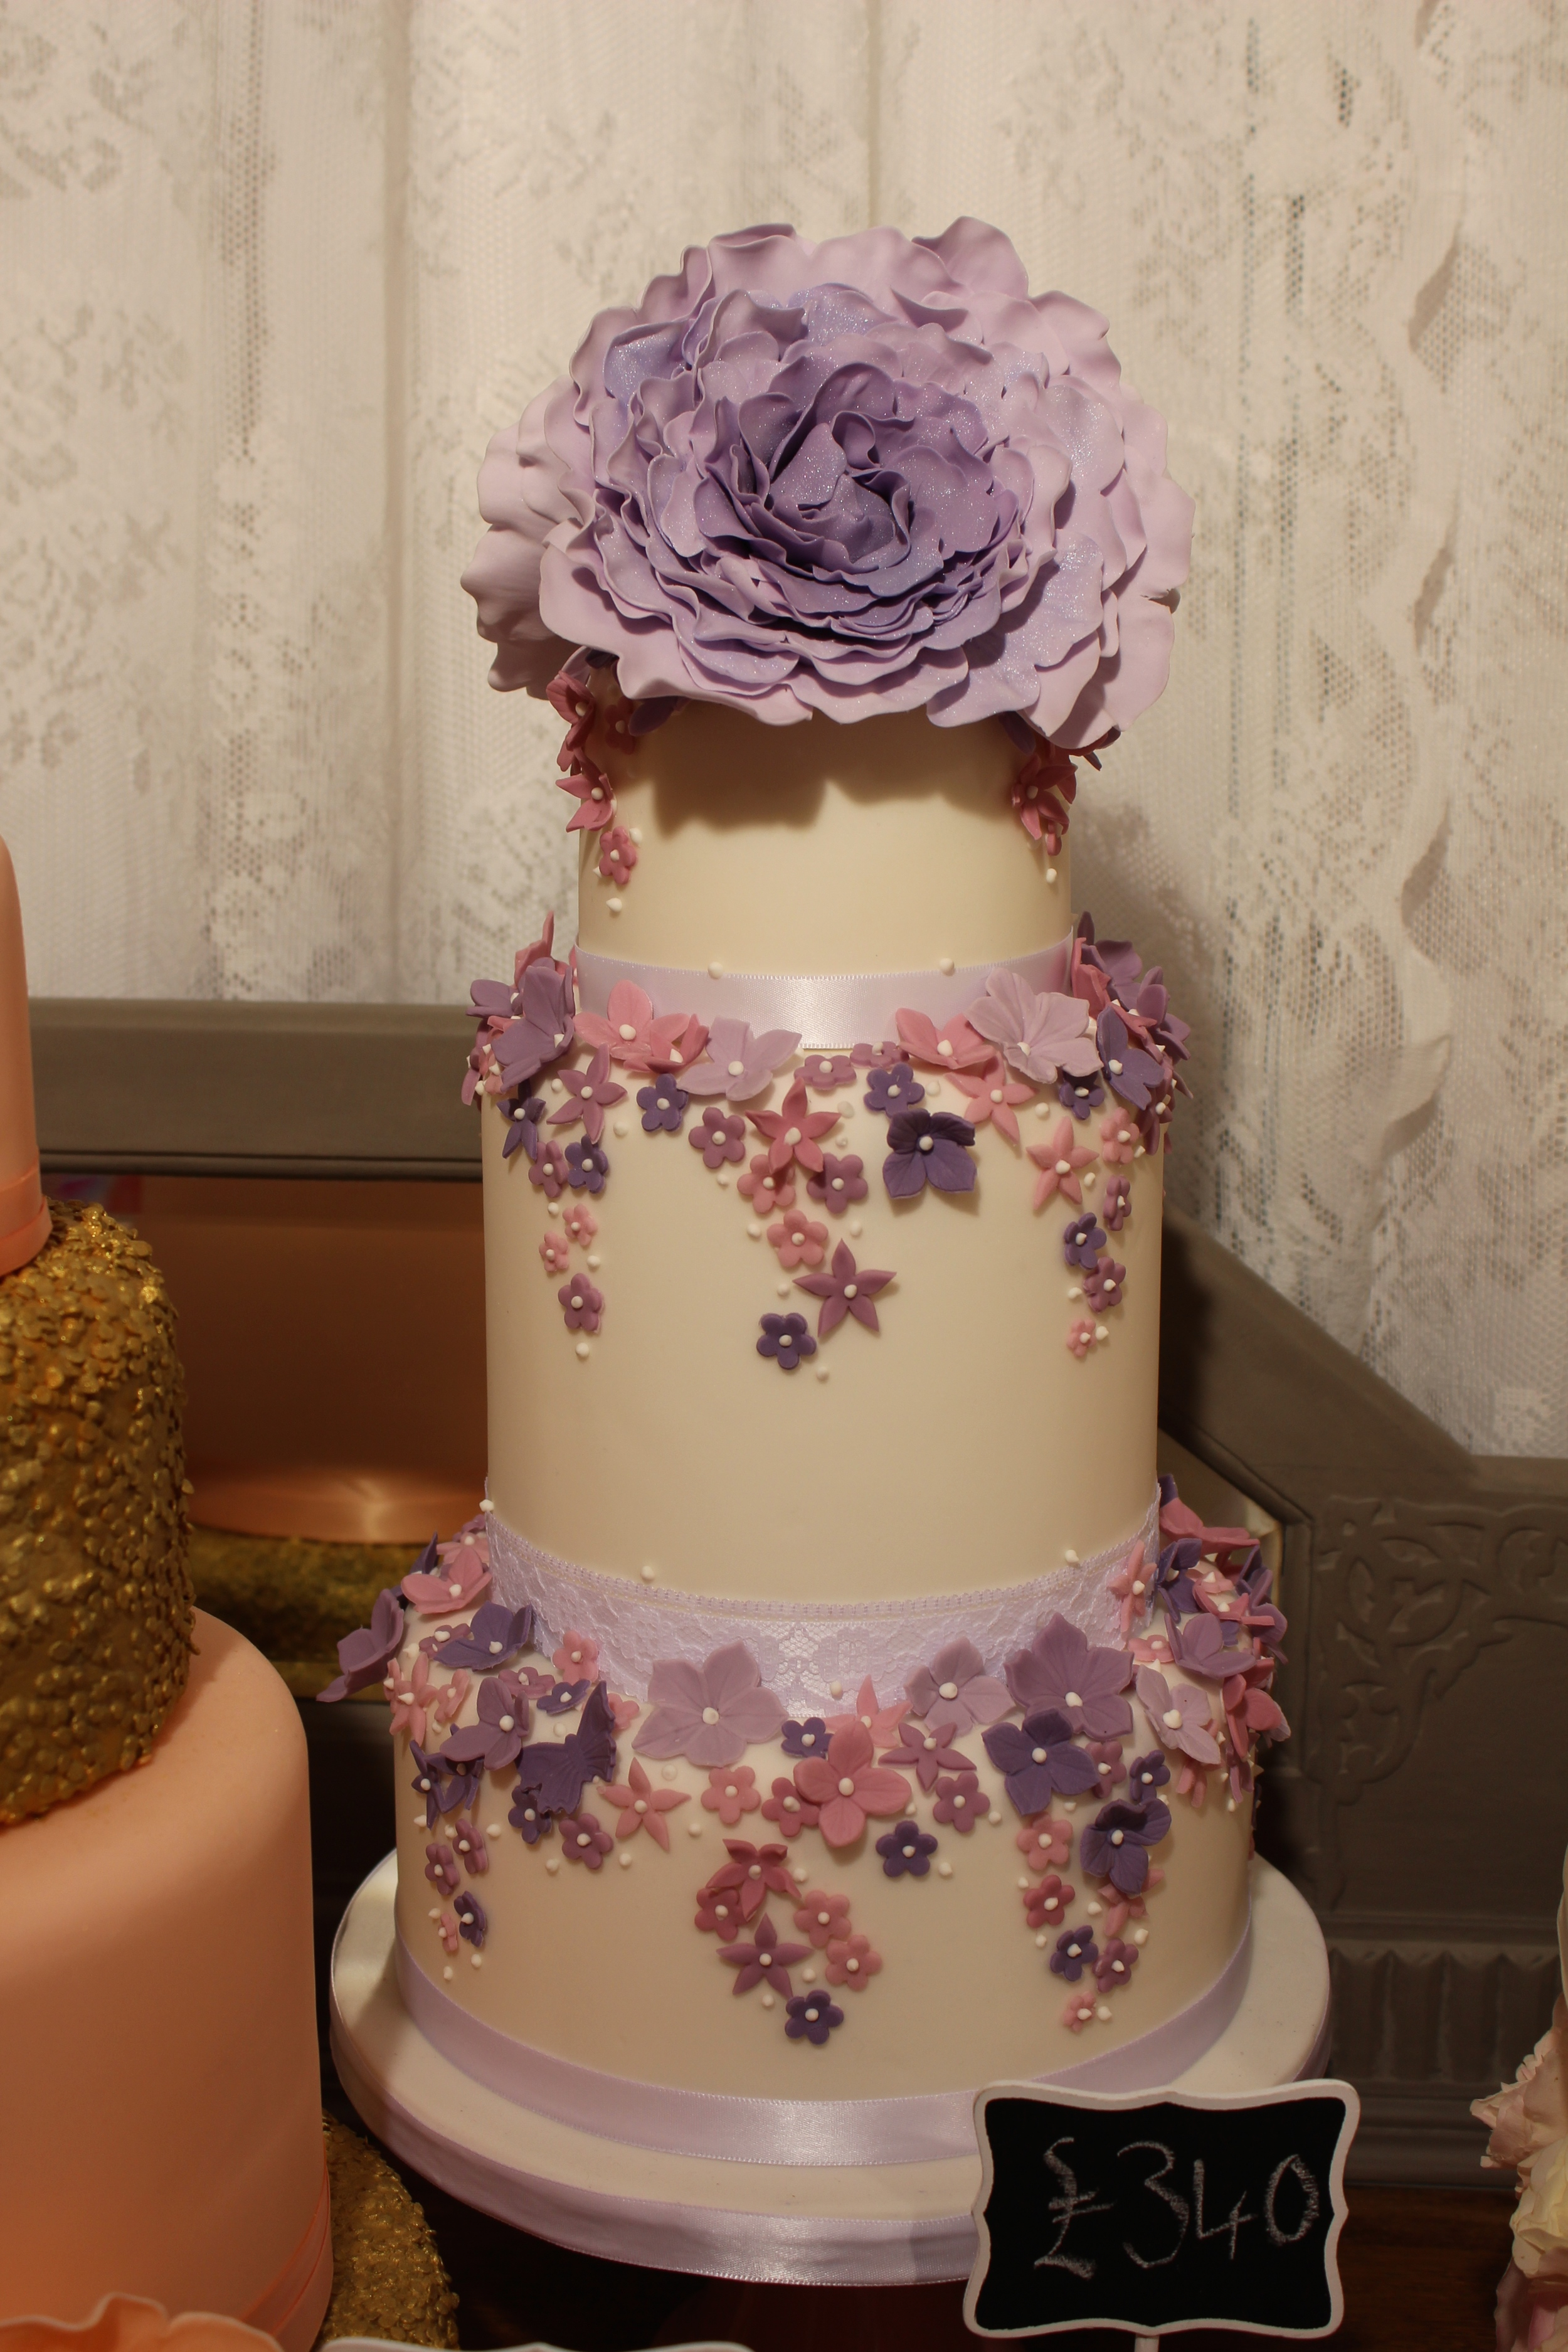 Purple and pink 3 tier cake with open peonies